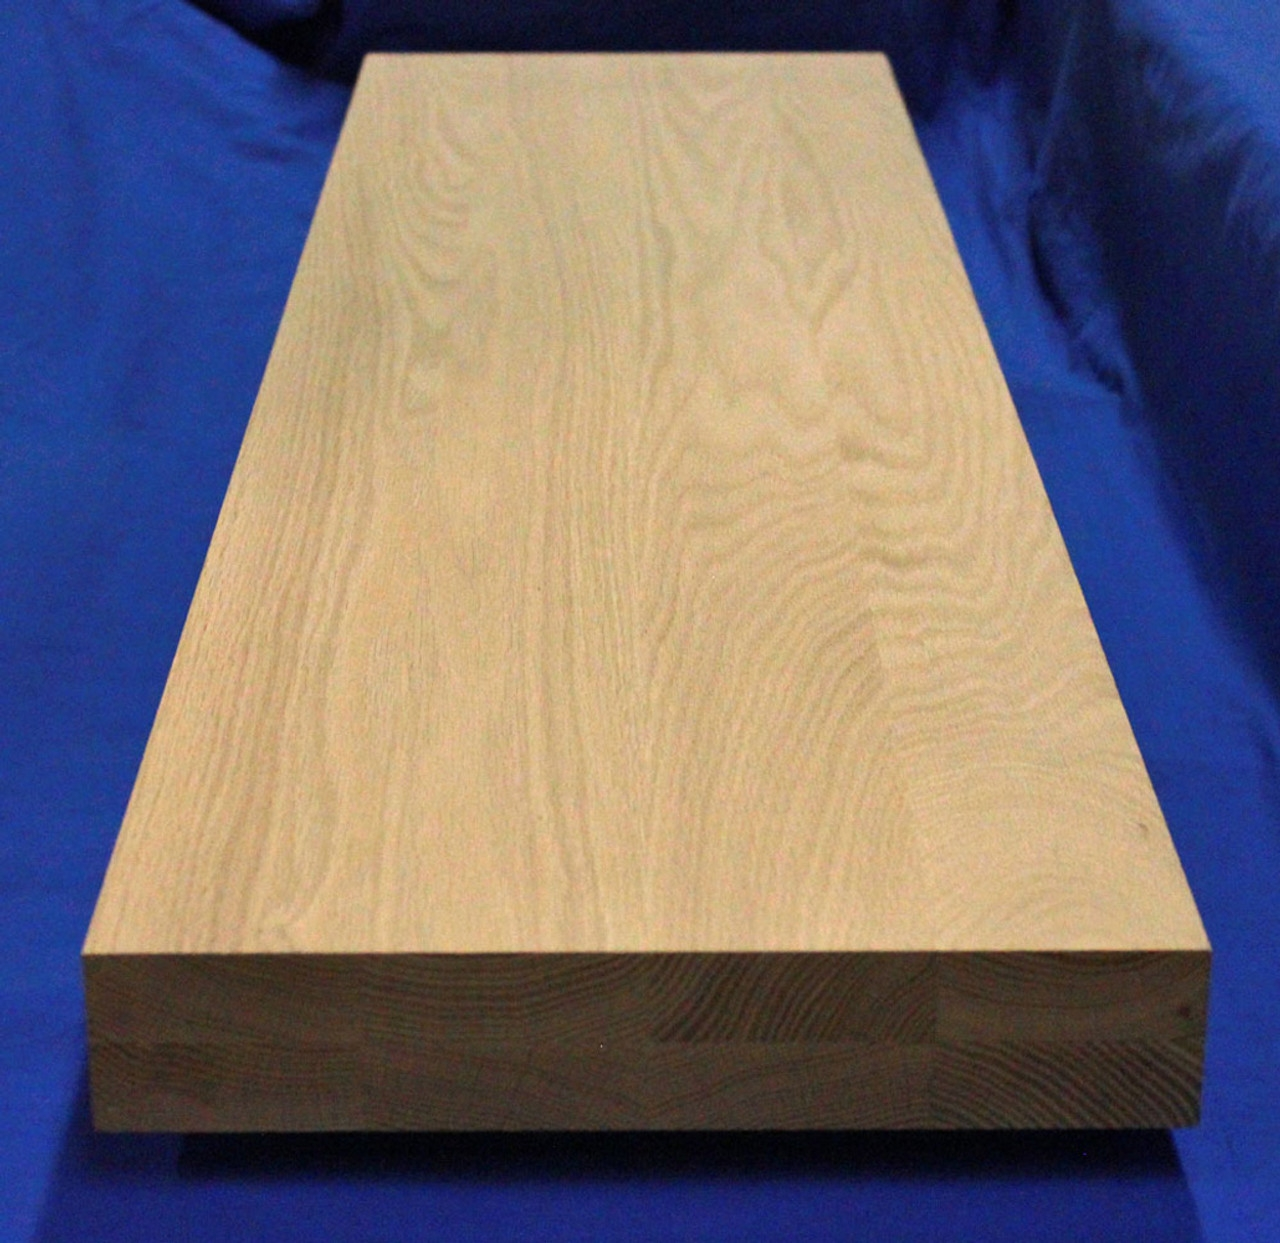 2 Thick Stair Treads Shop Online Kinzel Wood Products | 36 Inch Oak Stair Treads